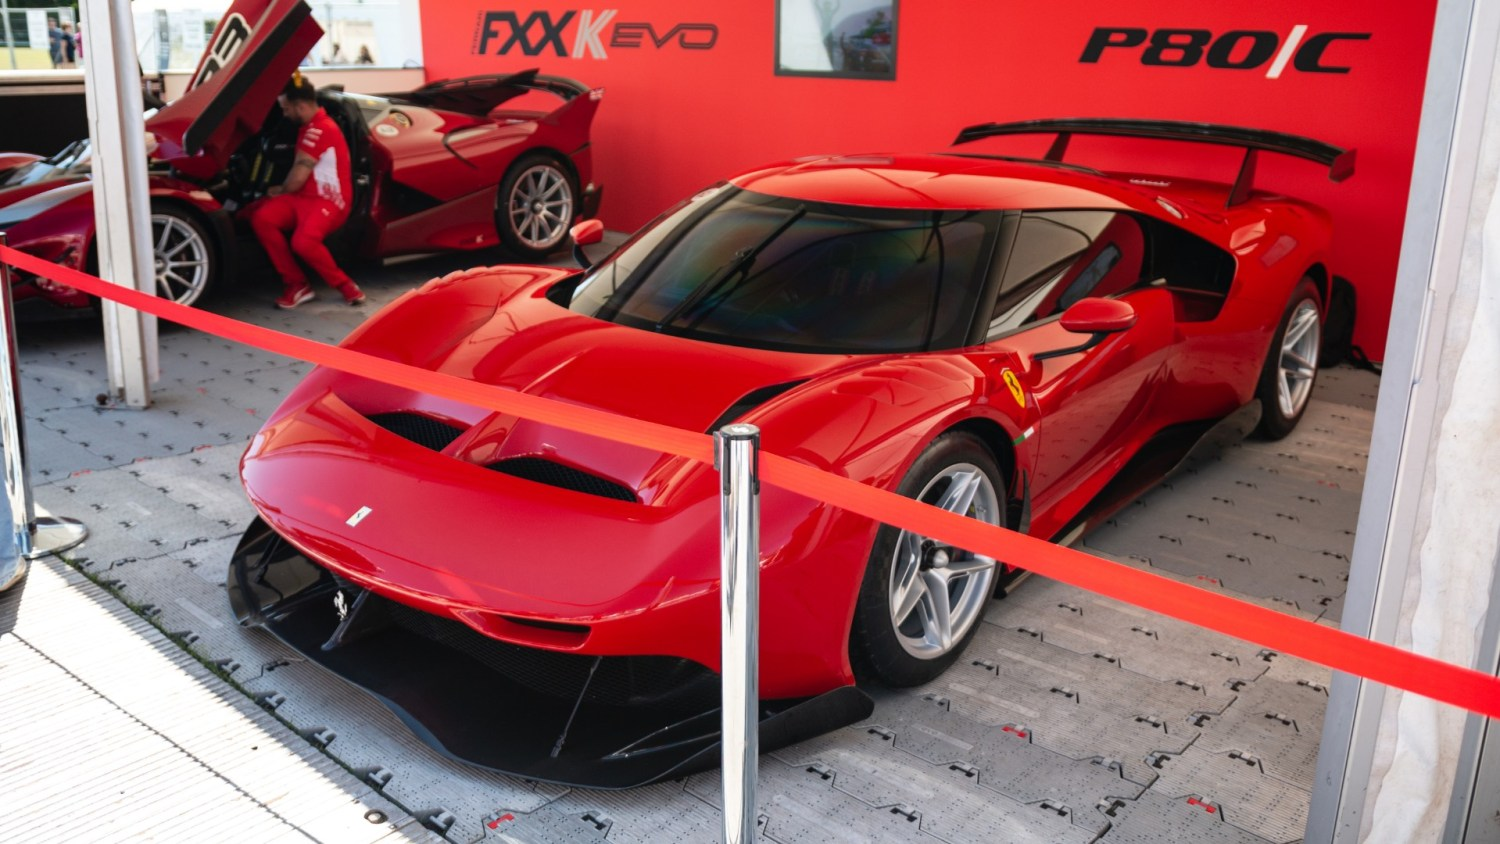 The new cars at Goodwood